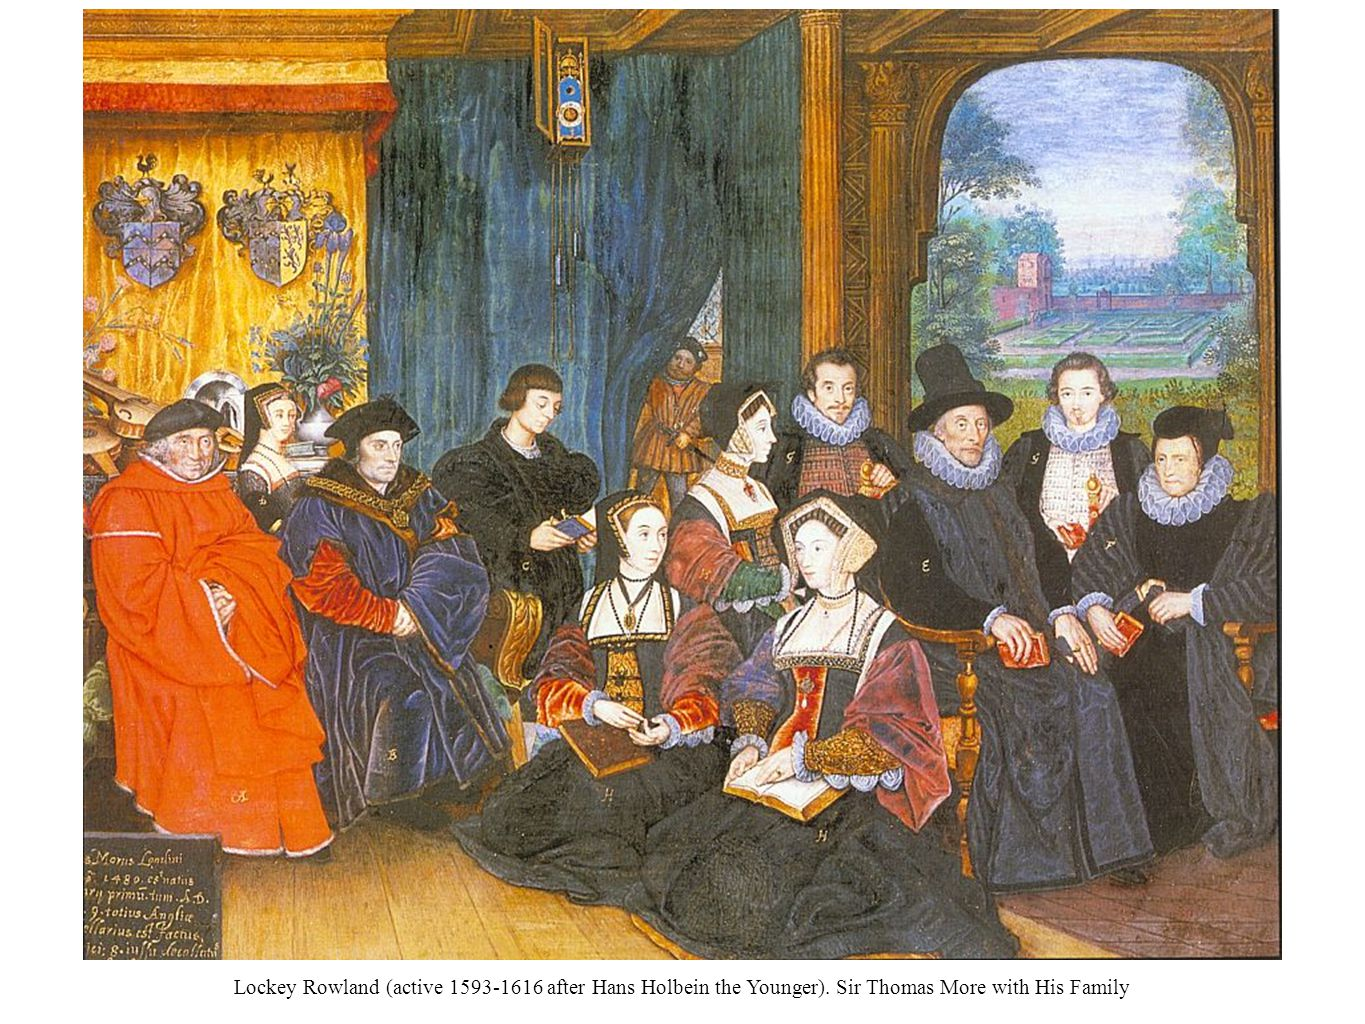 Lockey Rowland (active 1593-1616 after Hans Holbein the Younger). Sir Thomas More with His Family